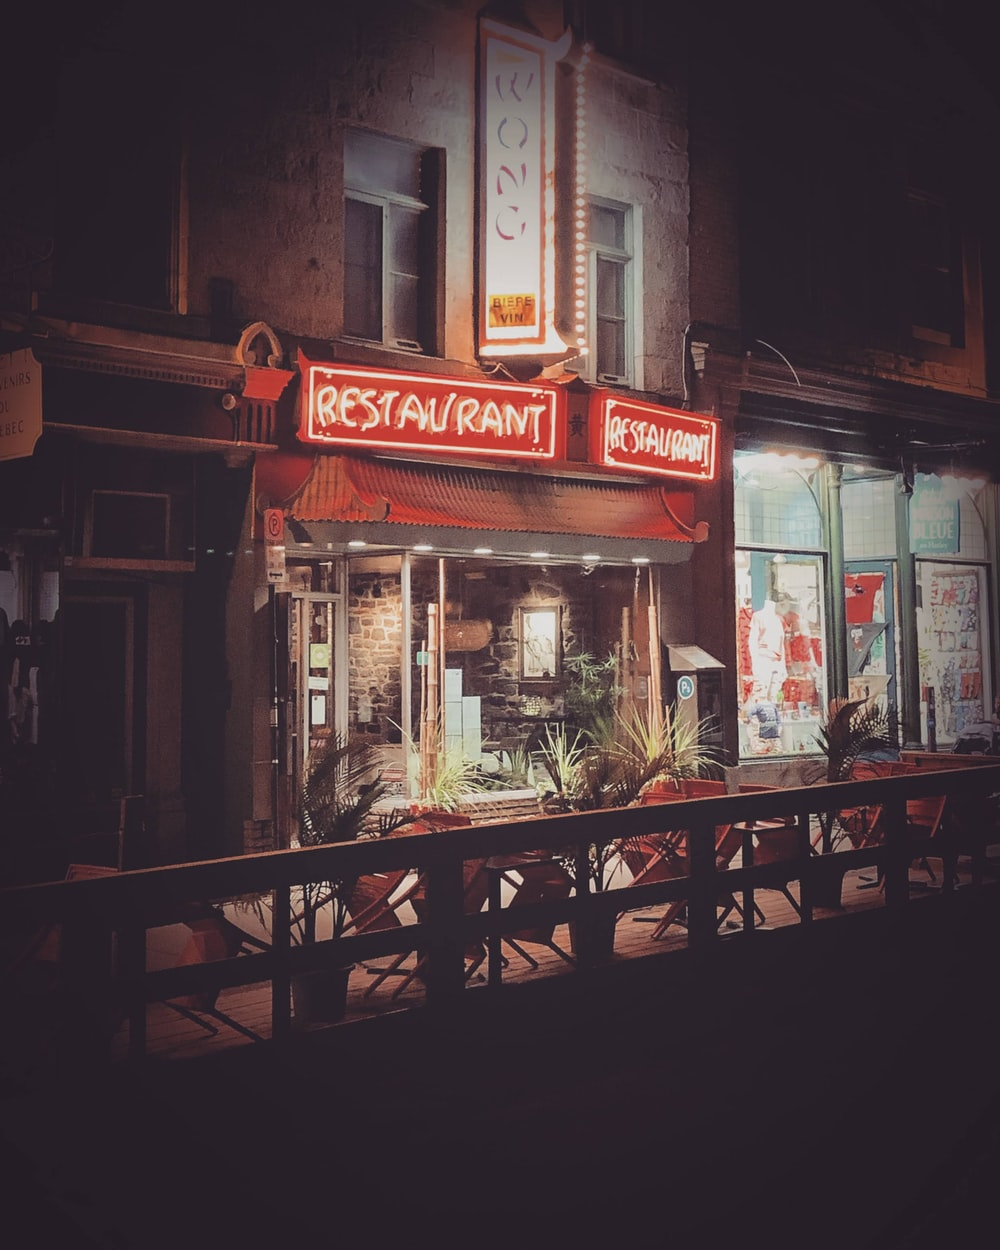 brown wooden chairs and tables in front of store during night time